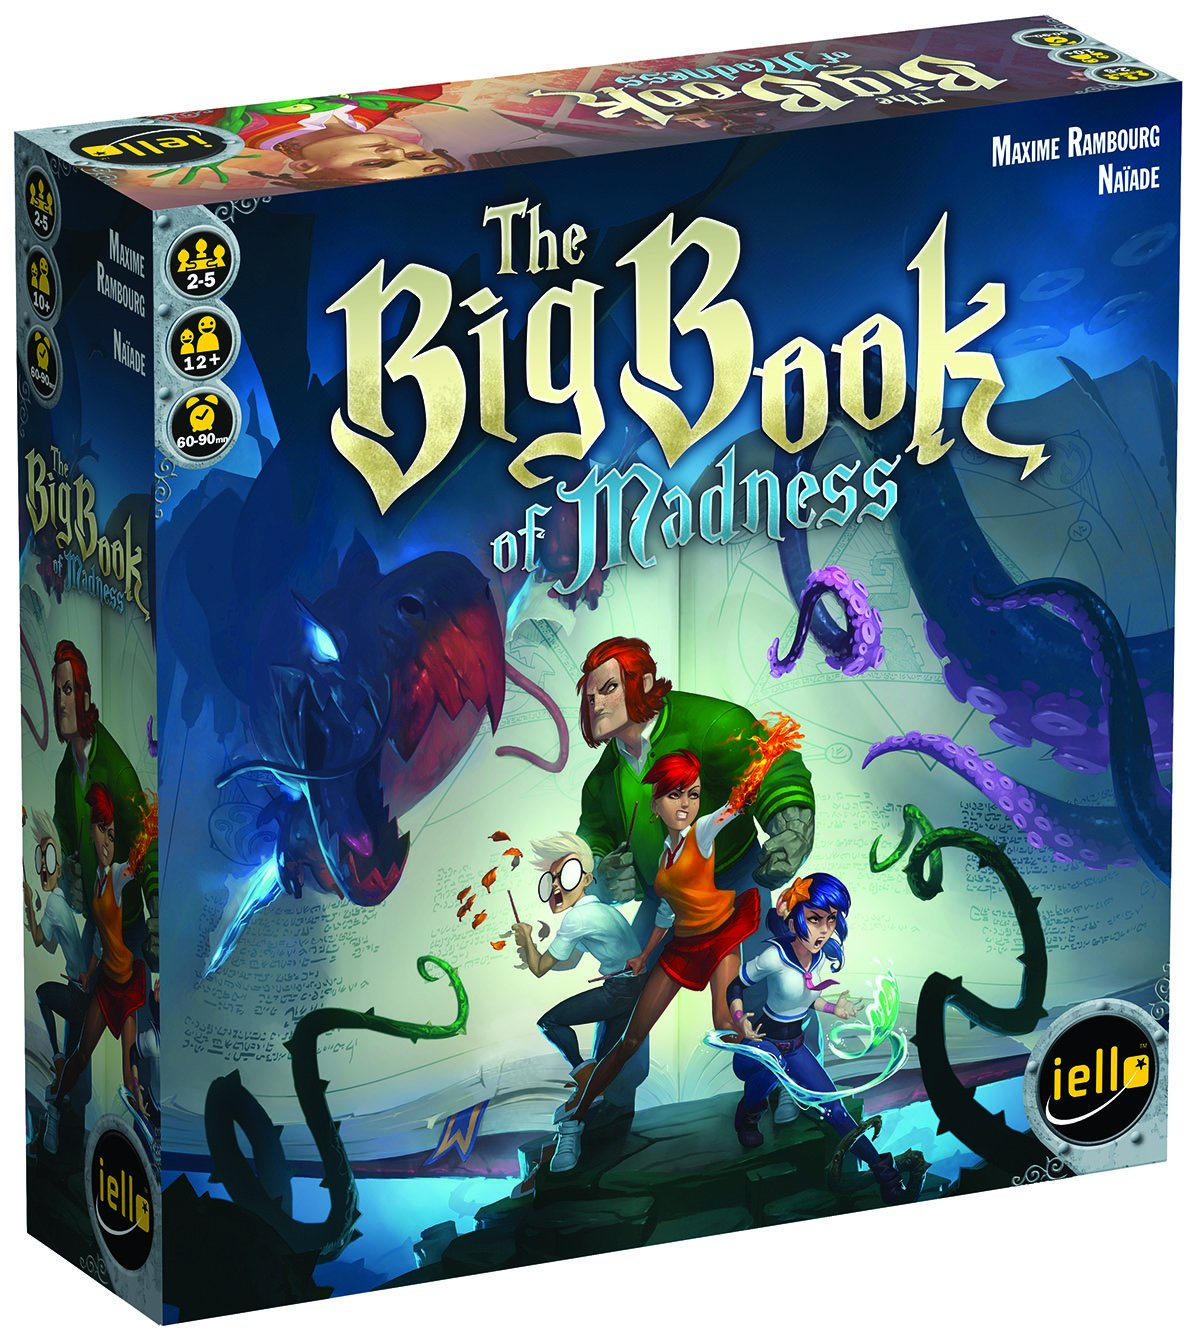 image of The Big Book of Madness with cartooned design on front.